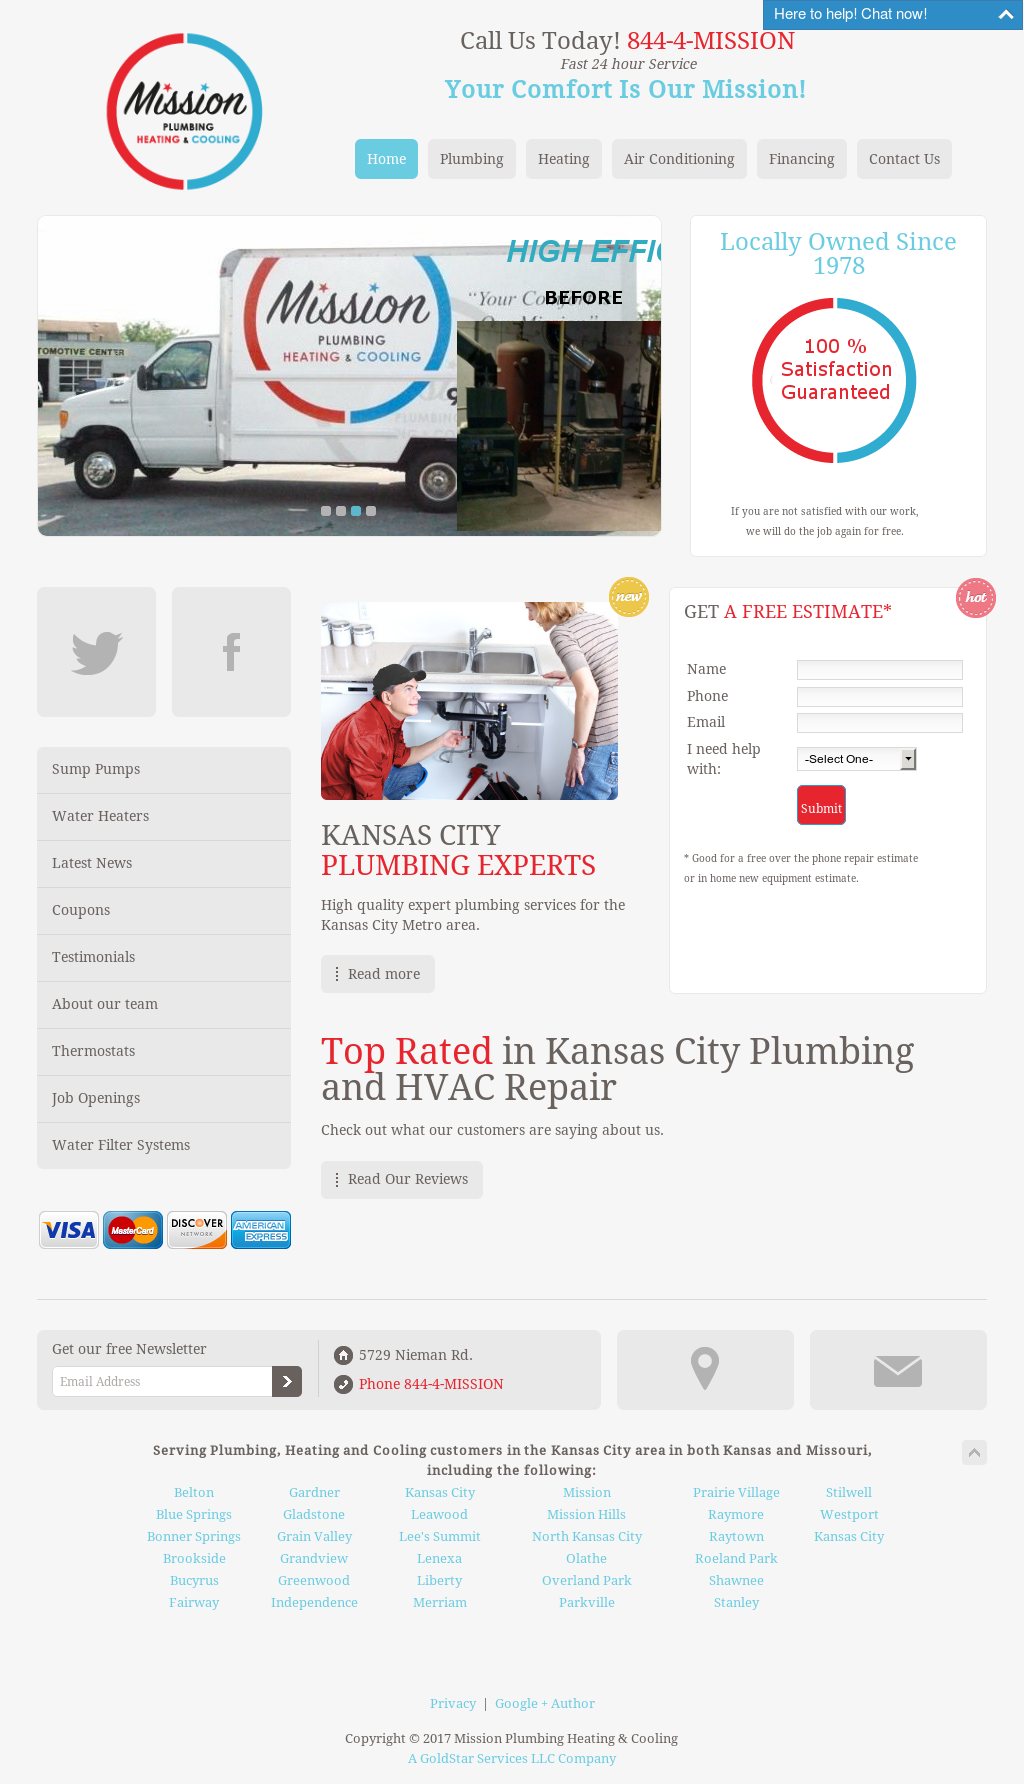 Mission Plumbing Heating Cooling Website History